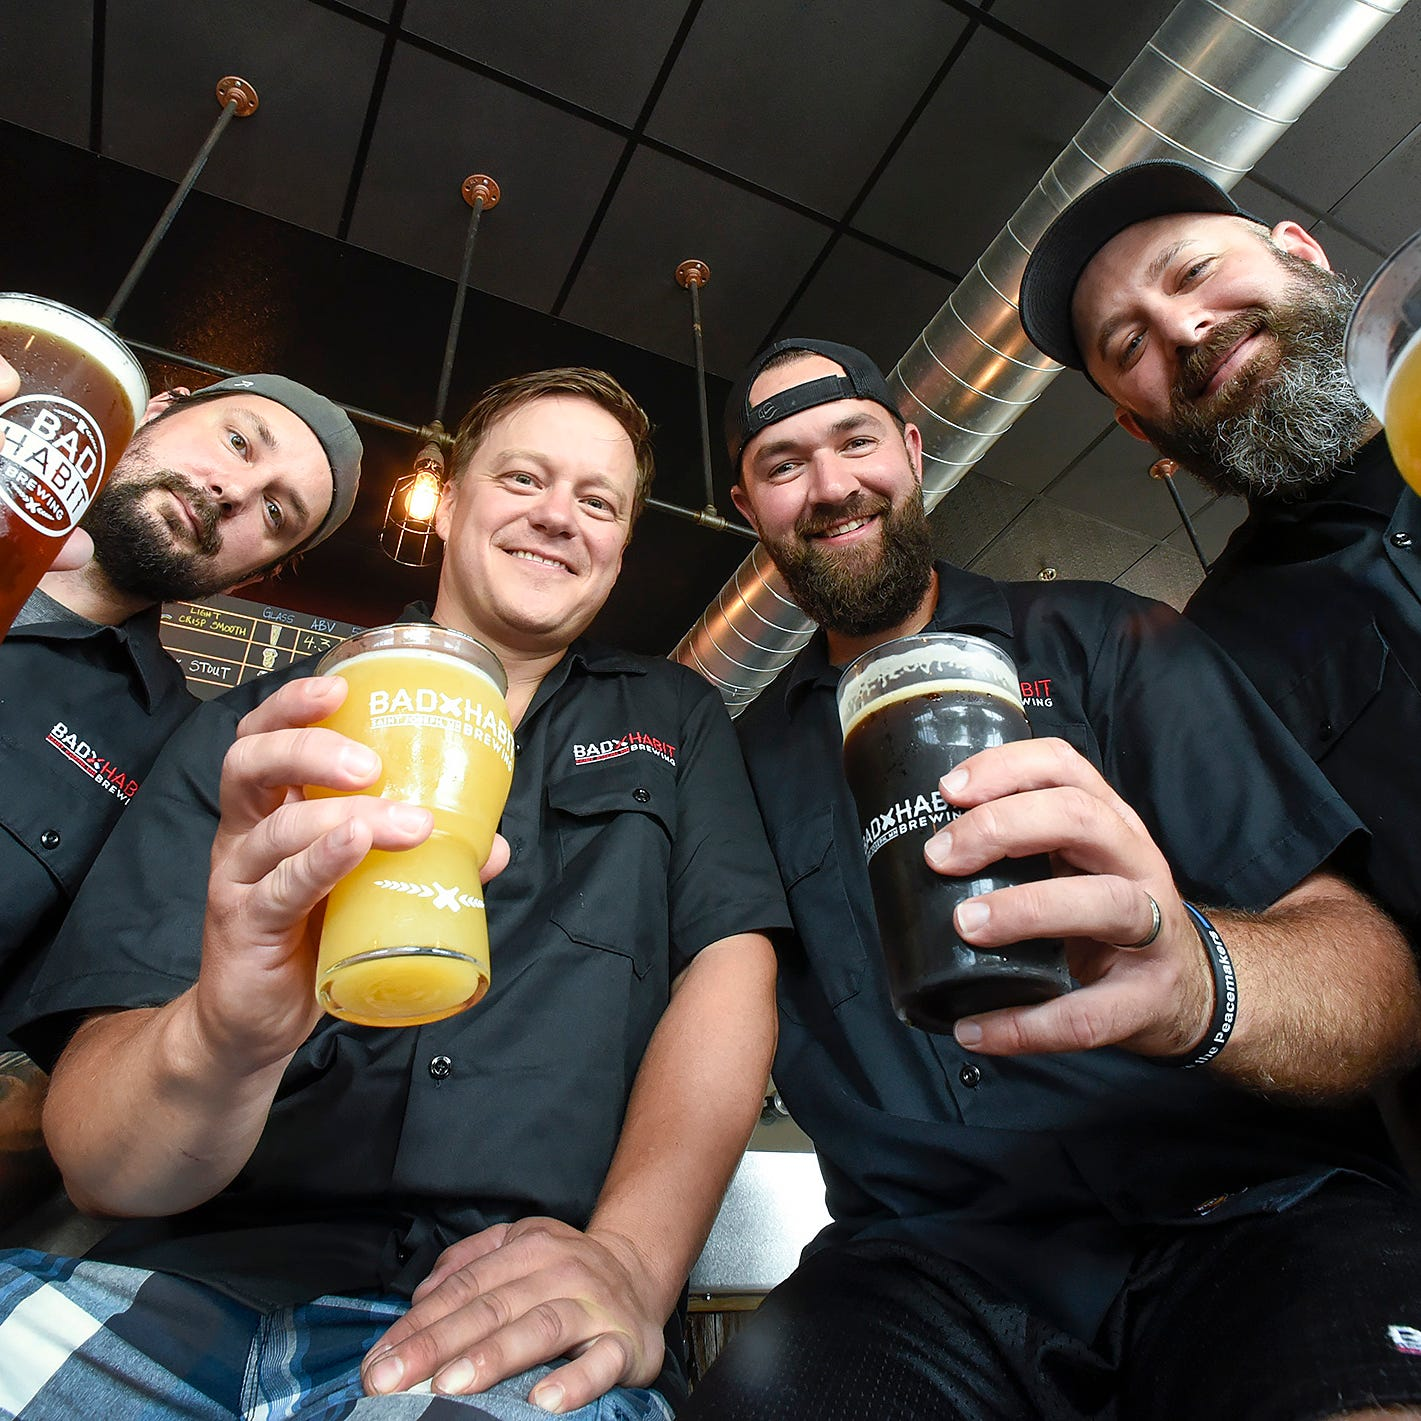 Bad Habit(s) make for good beer in St. Joseph